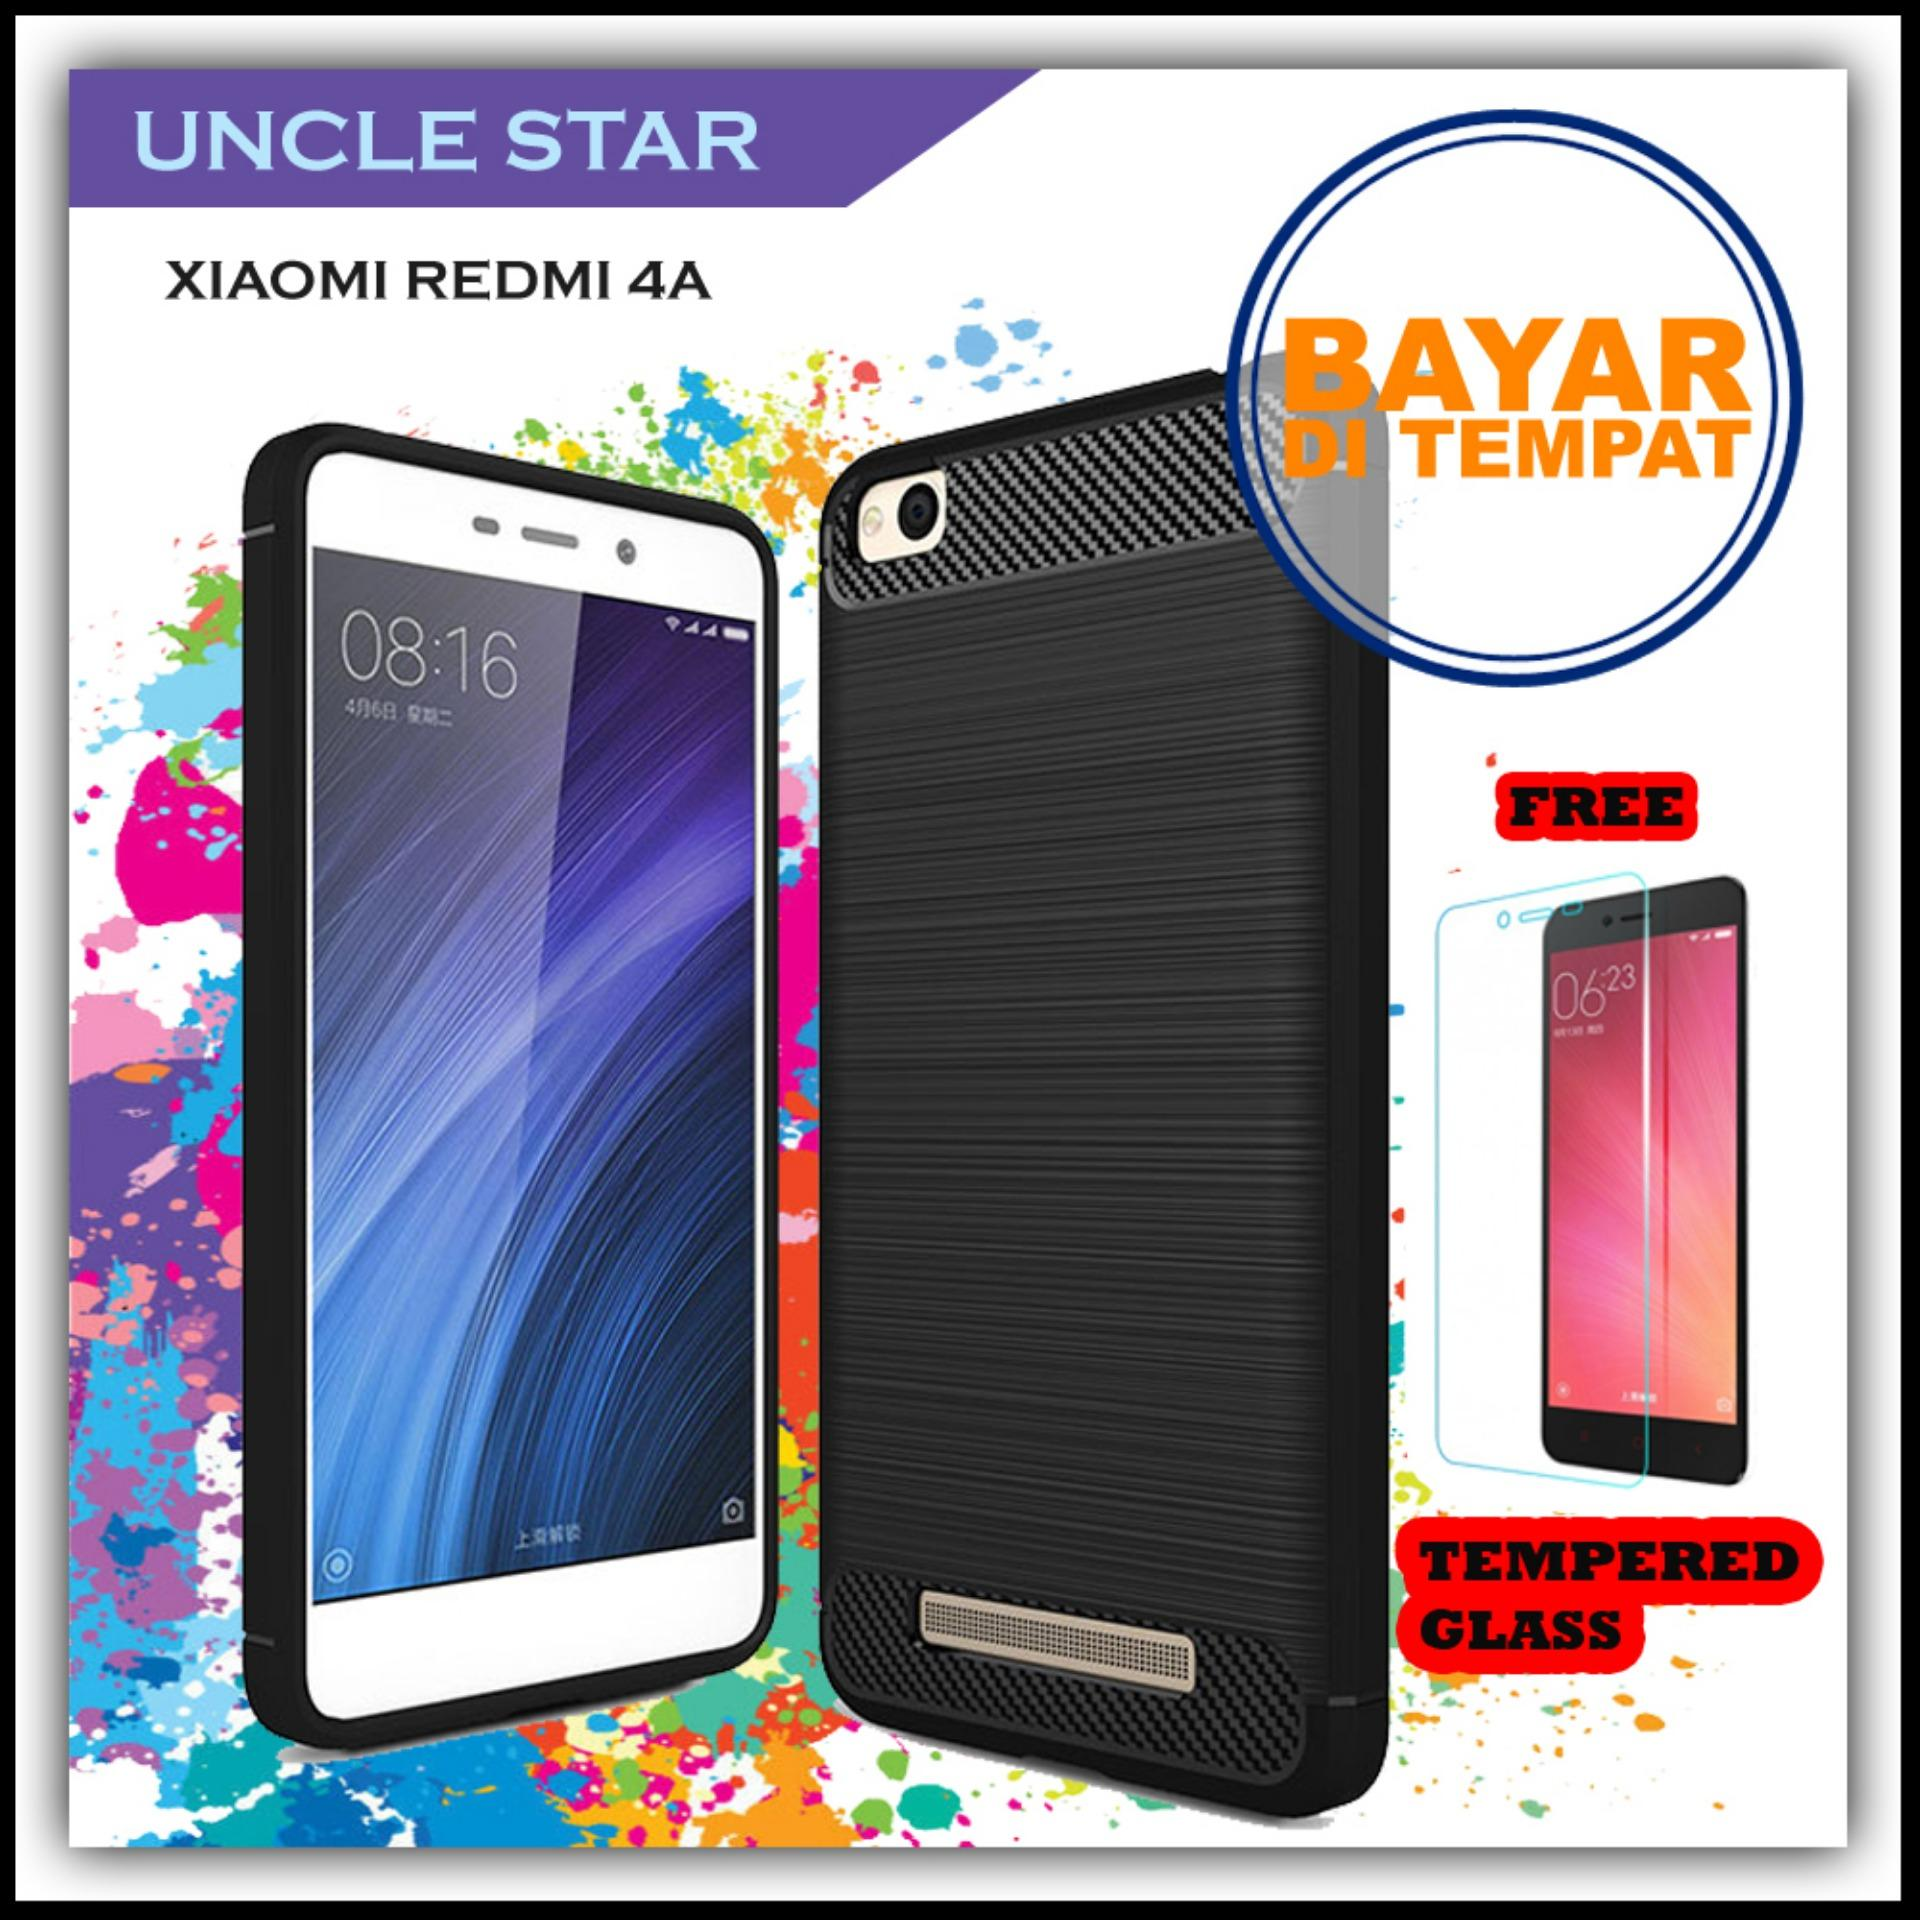 Uncle Star - Case Ipaky Carbon Fiber Shockproof Hybrid Elegant Case for Xiaomi Redmi 4a FREE